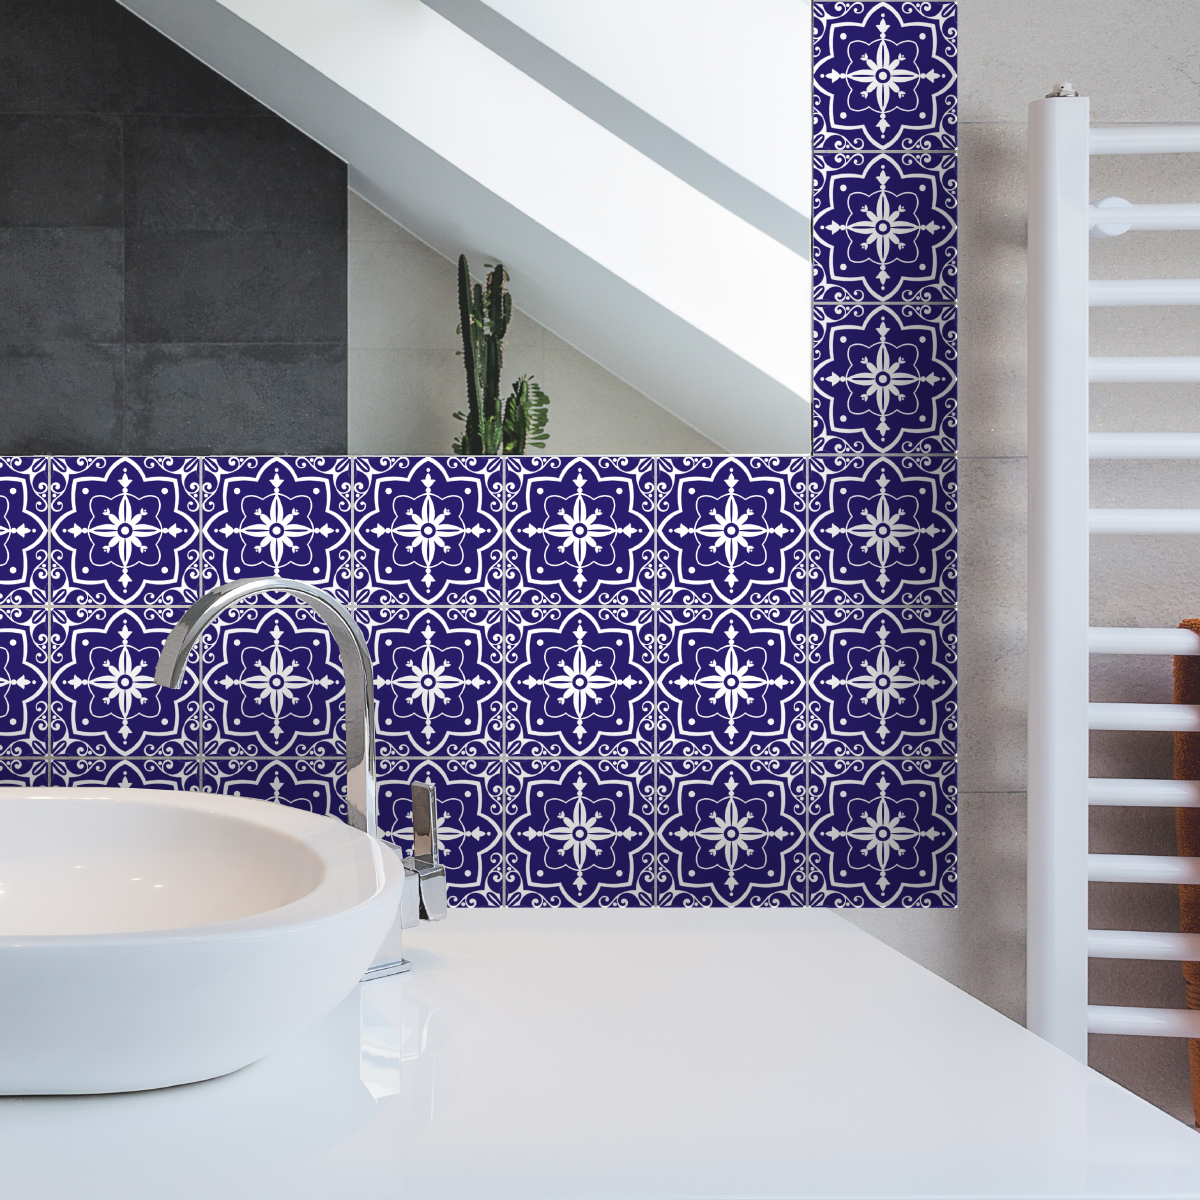 9 stickers carreaux de ciment azulejos gracia salle de bain et wc salle de bain ambiance sticker. Black Bedroom Furniture Sets. Home Design Ideas